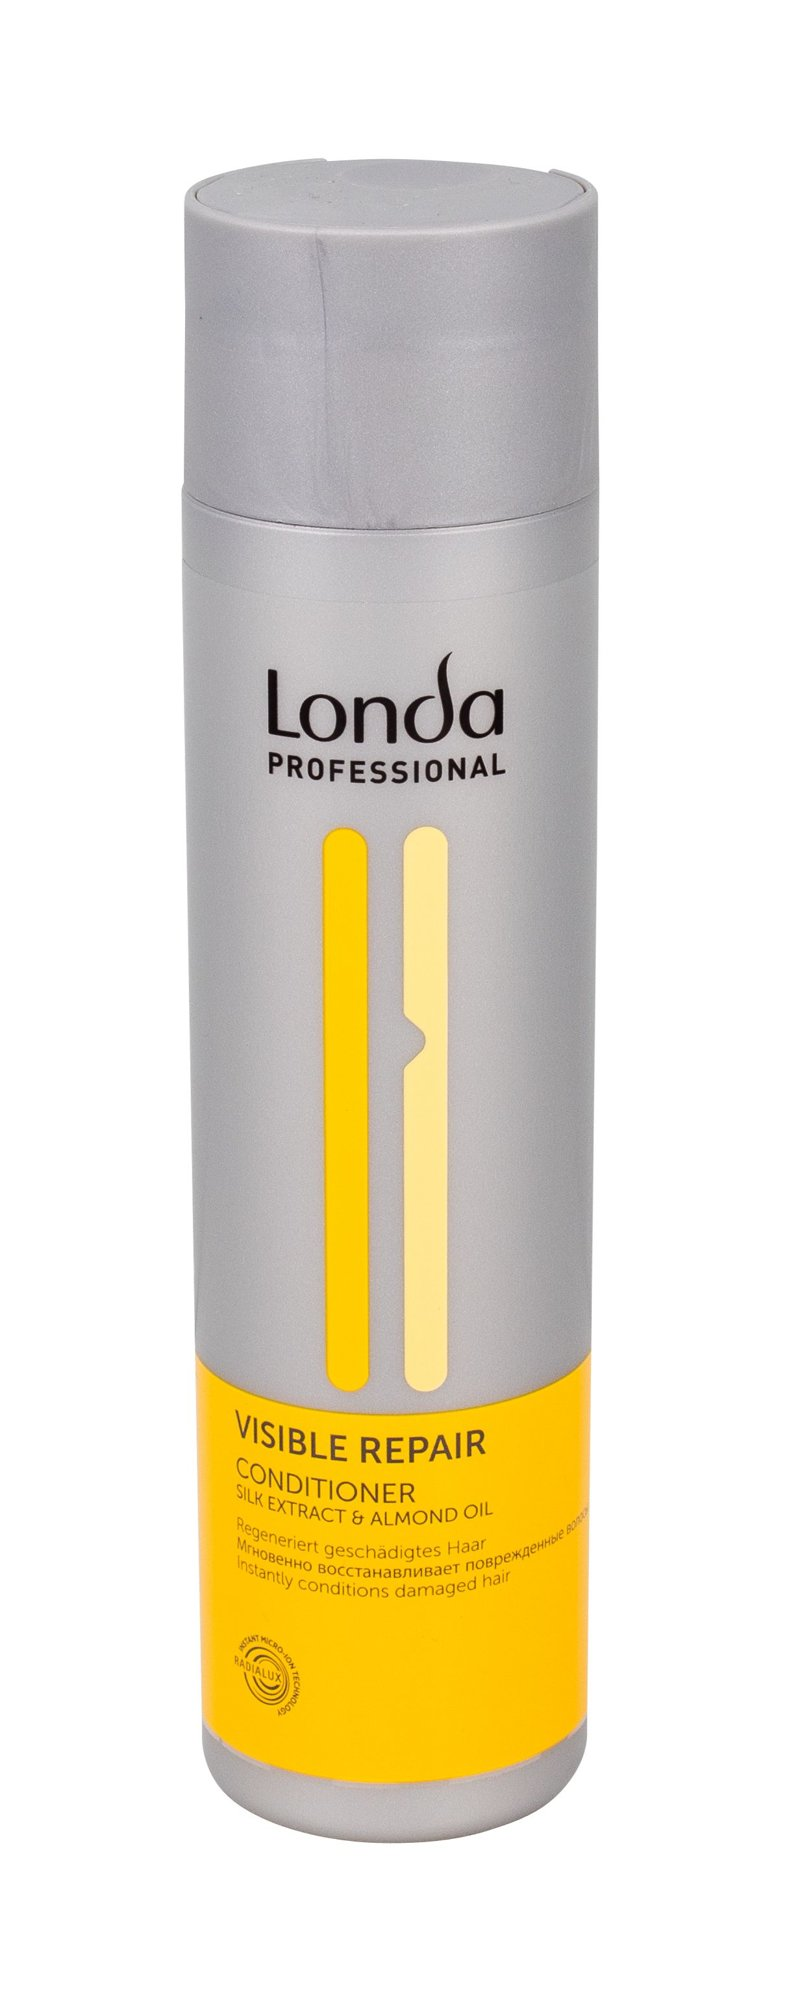 Londa Professional Visible Repair Cosmetic 250ml